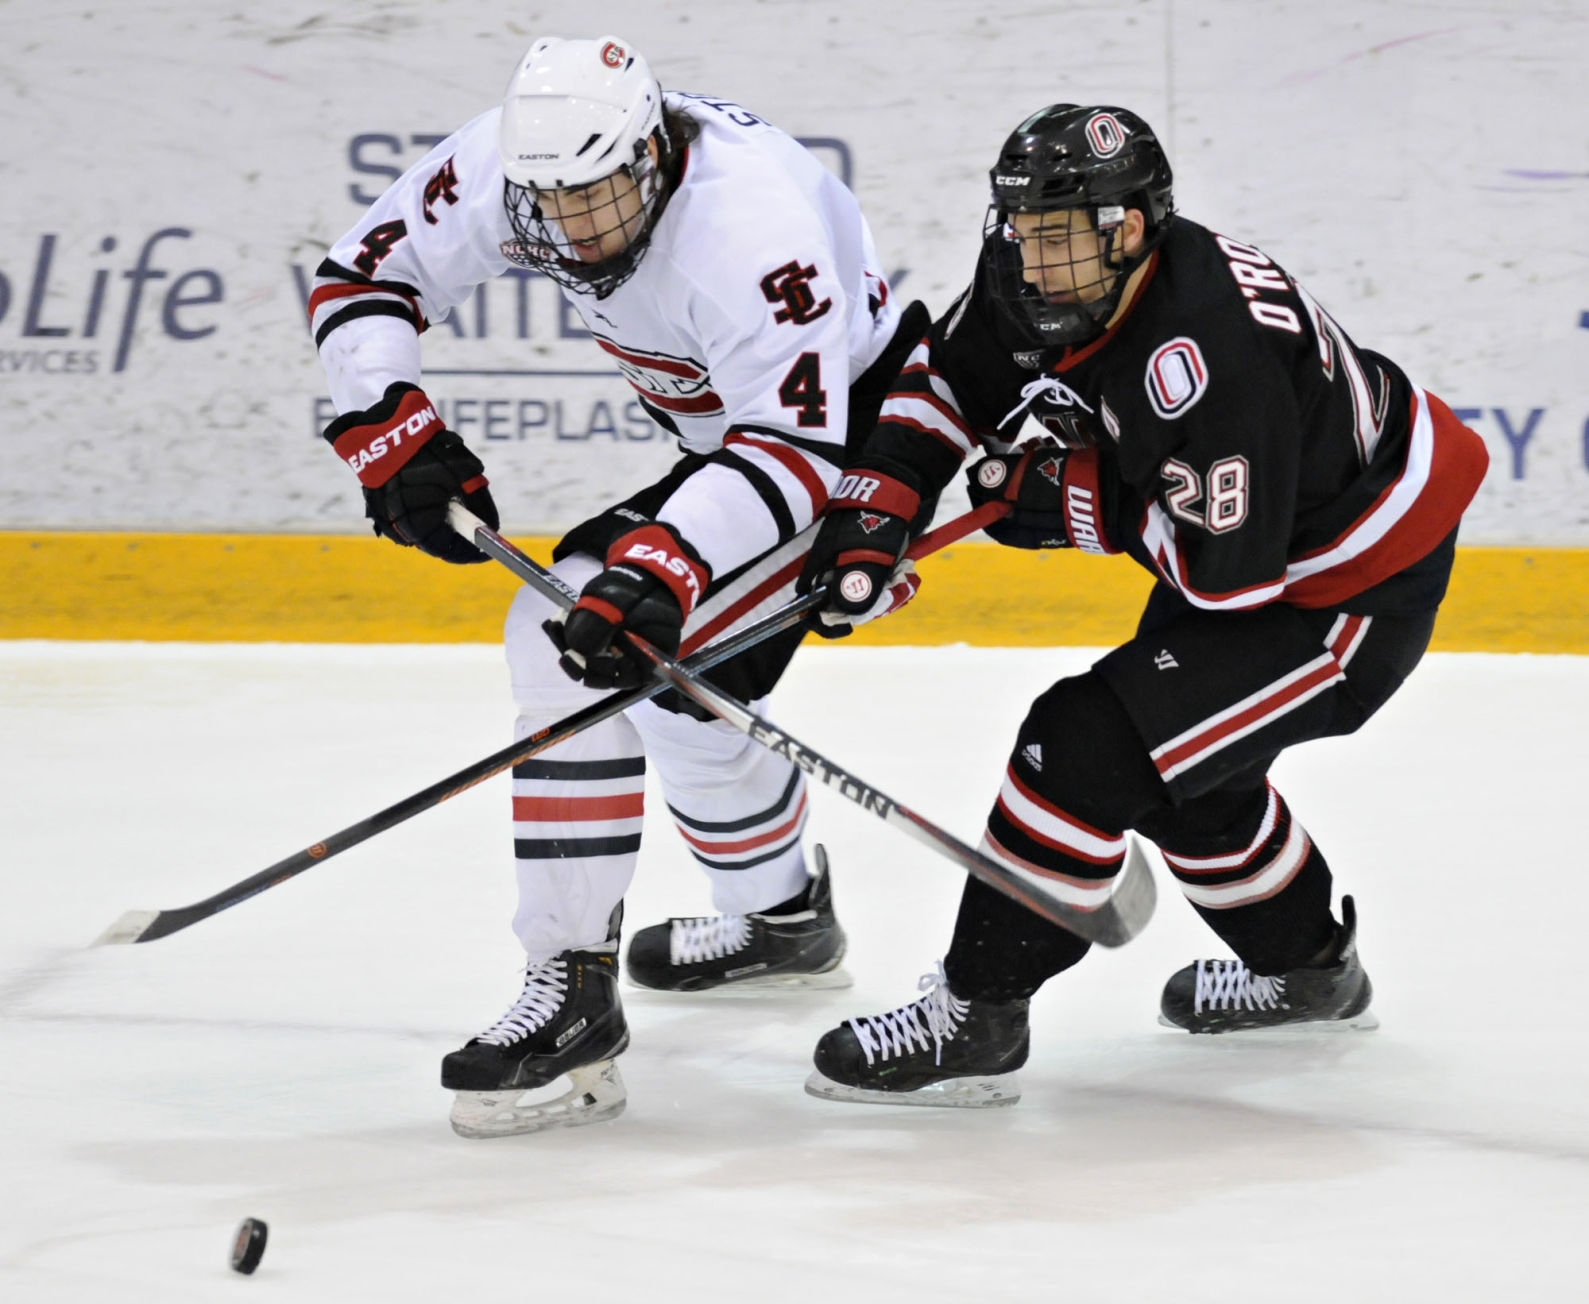 NCHC: UNO Mavs Swept By St. Cloud, Look To Avoid Breaking Late